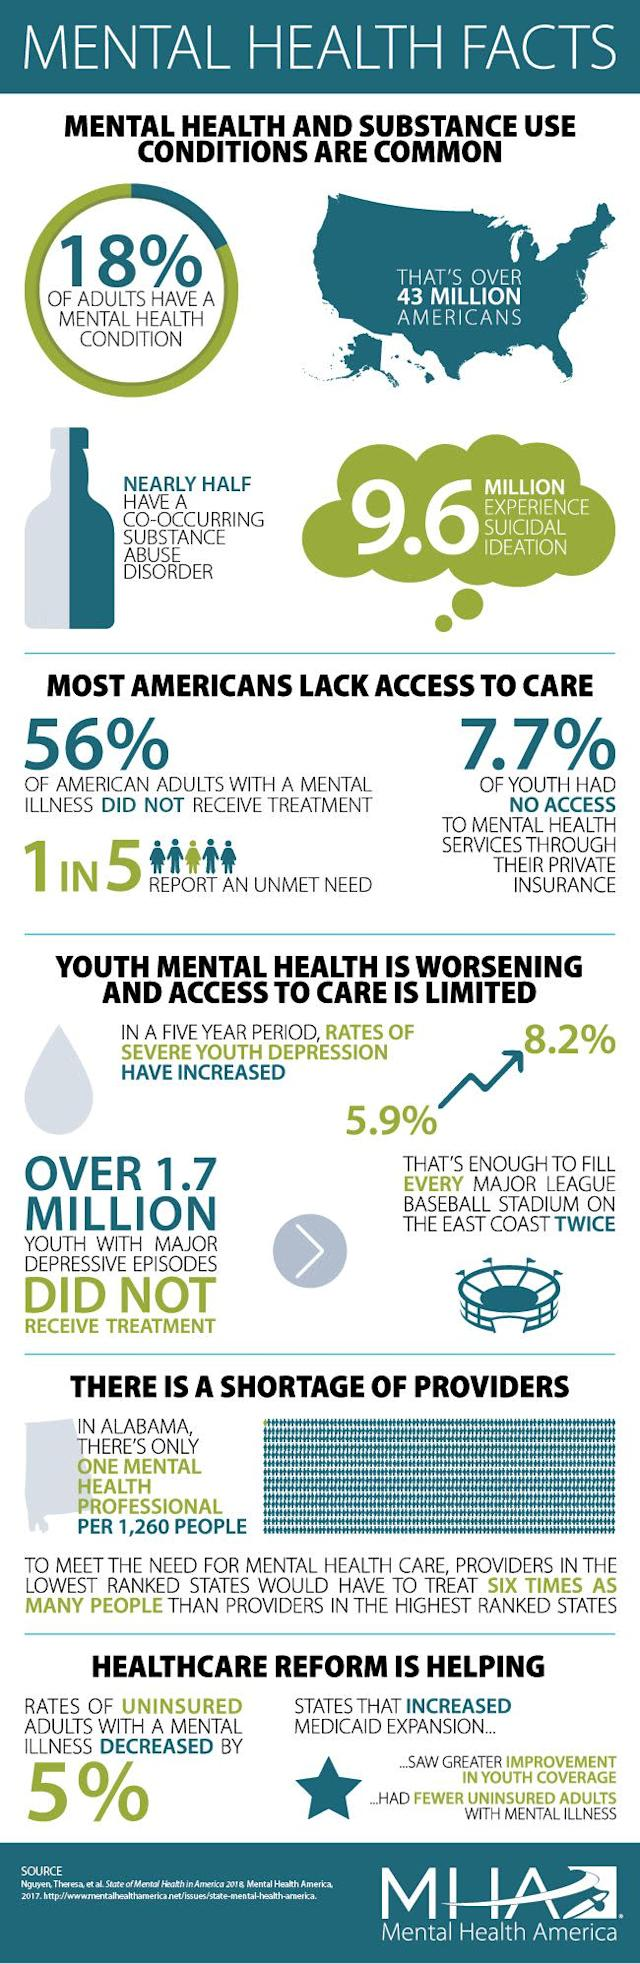 The overall findings from the 2018 State of Mental Health Report published by Mental Health America.